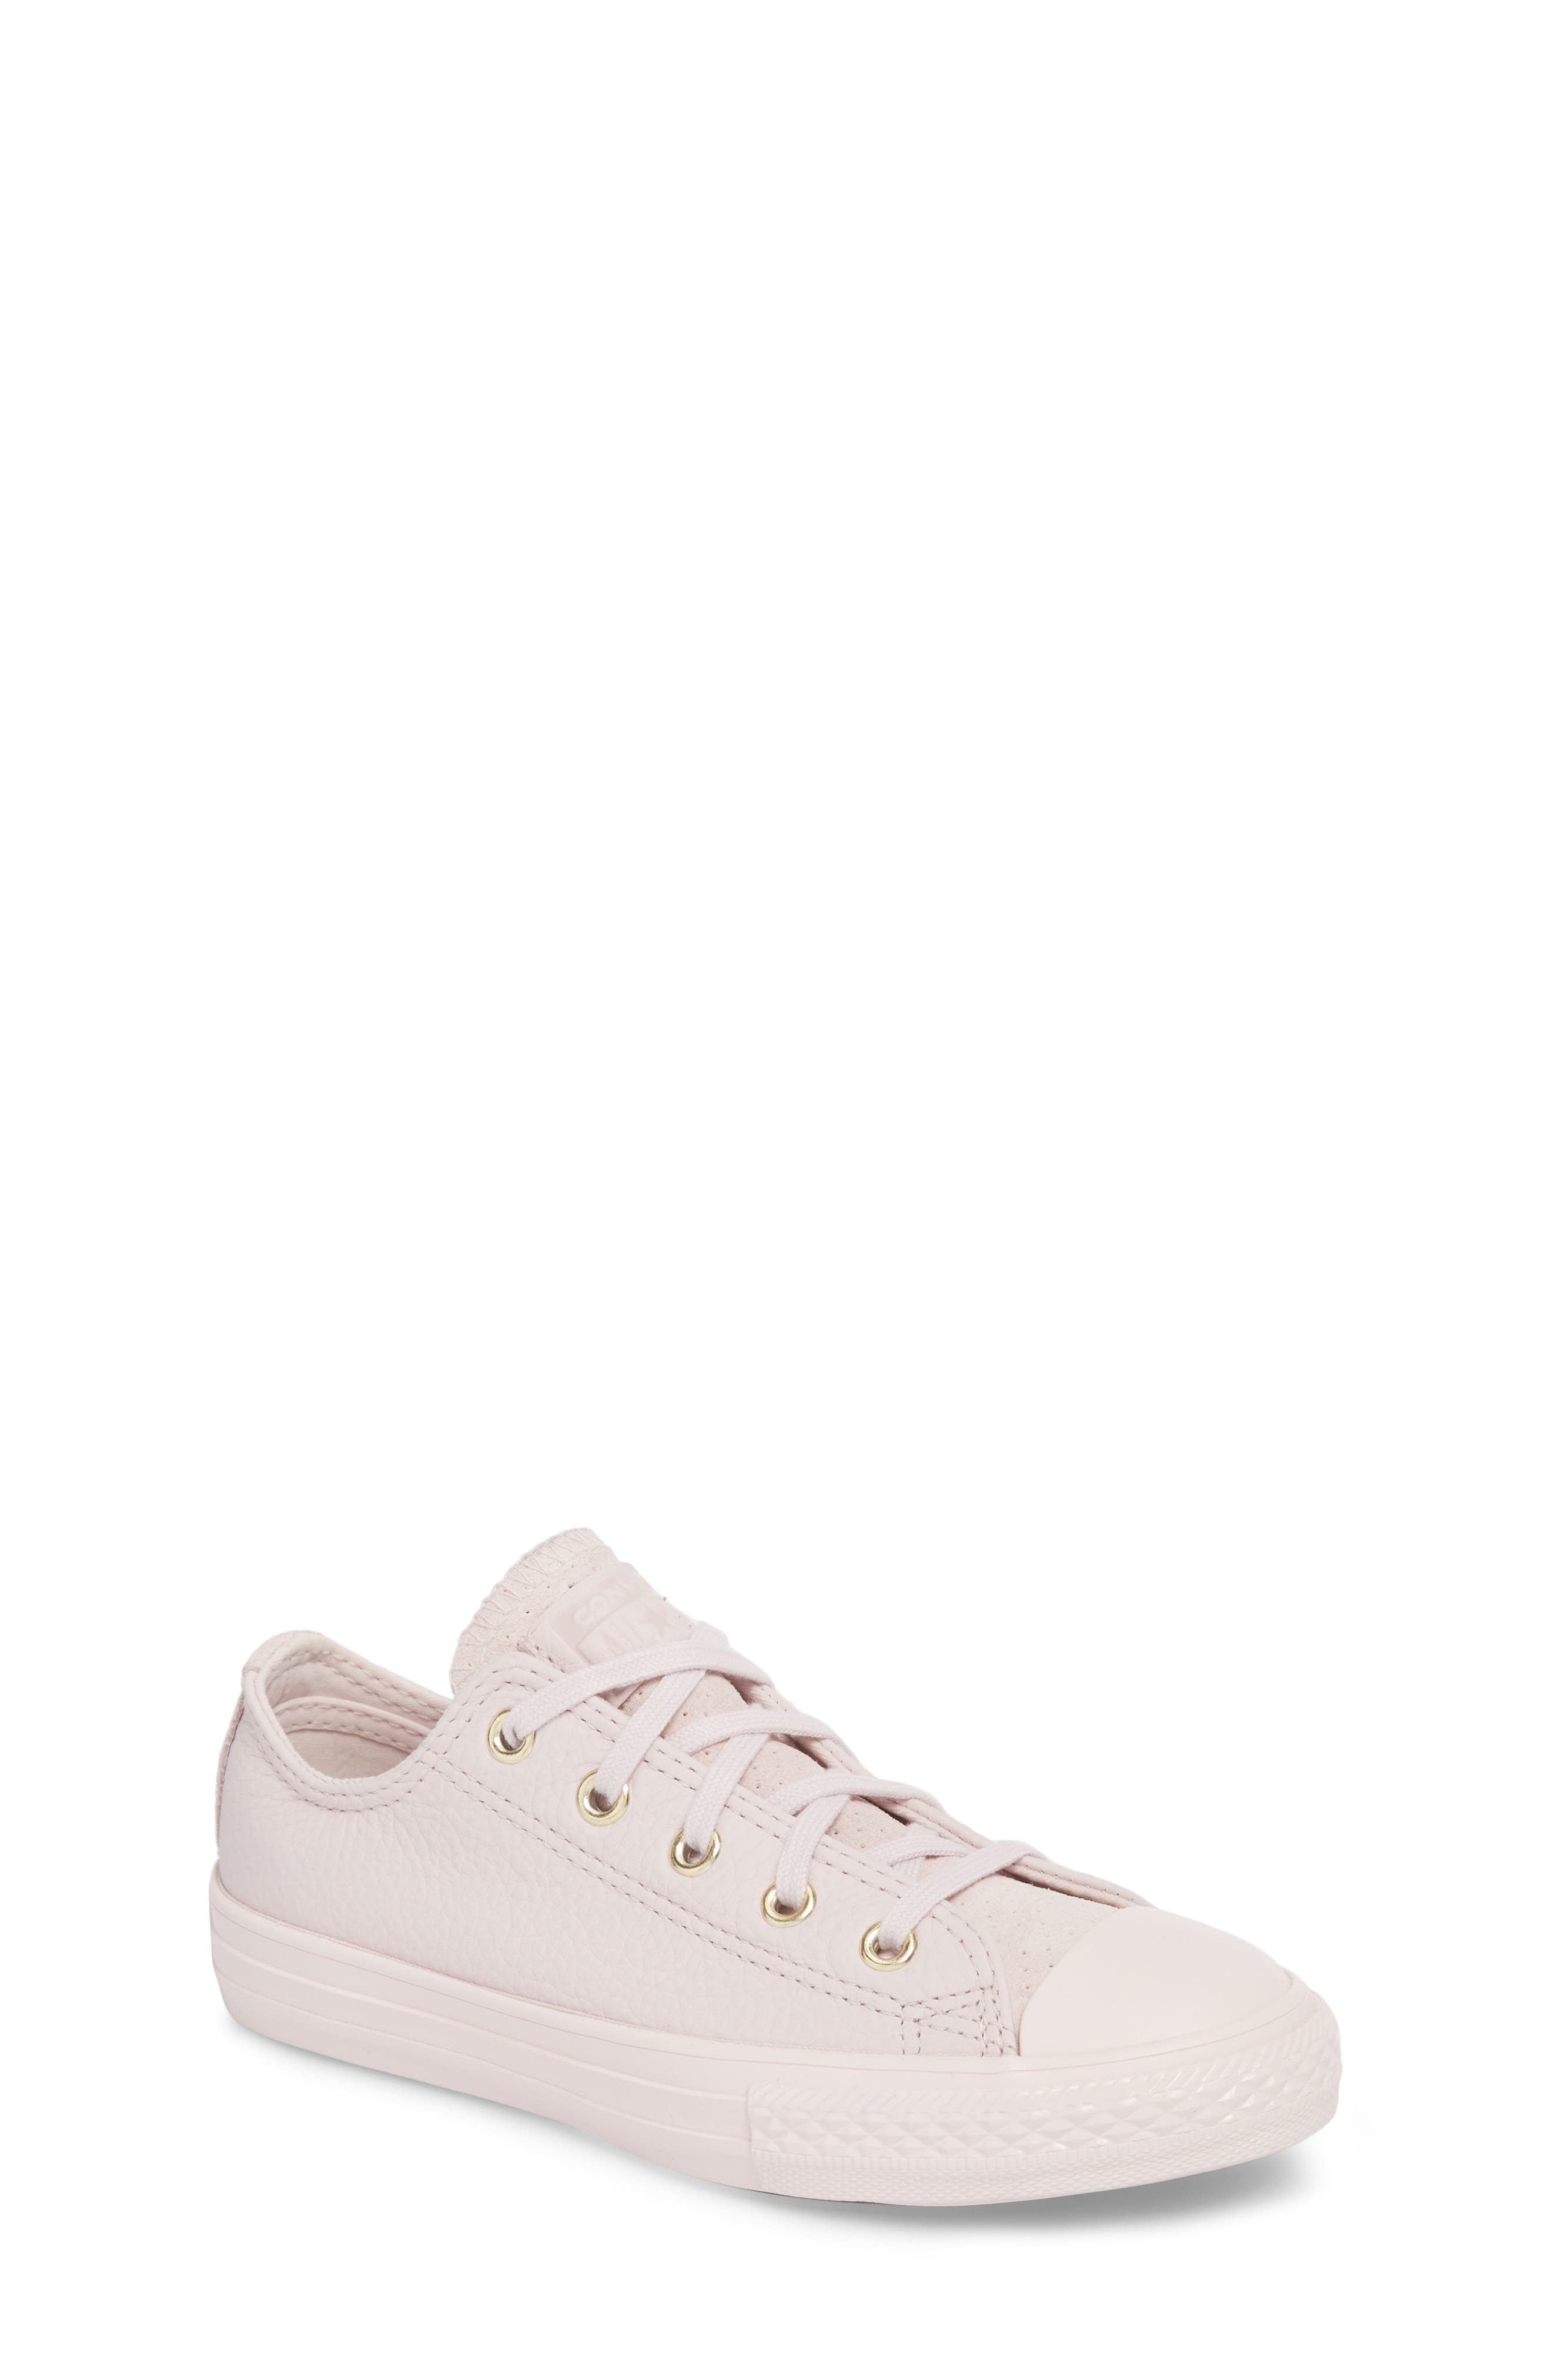 Chuck Taylor<sup>®</sup> All Star<sup>®</sup> Mono Low Top Sneaker,                         Main,                         color, Pulse